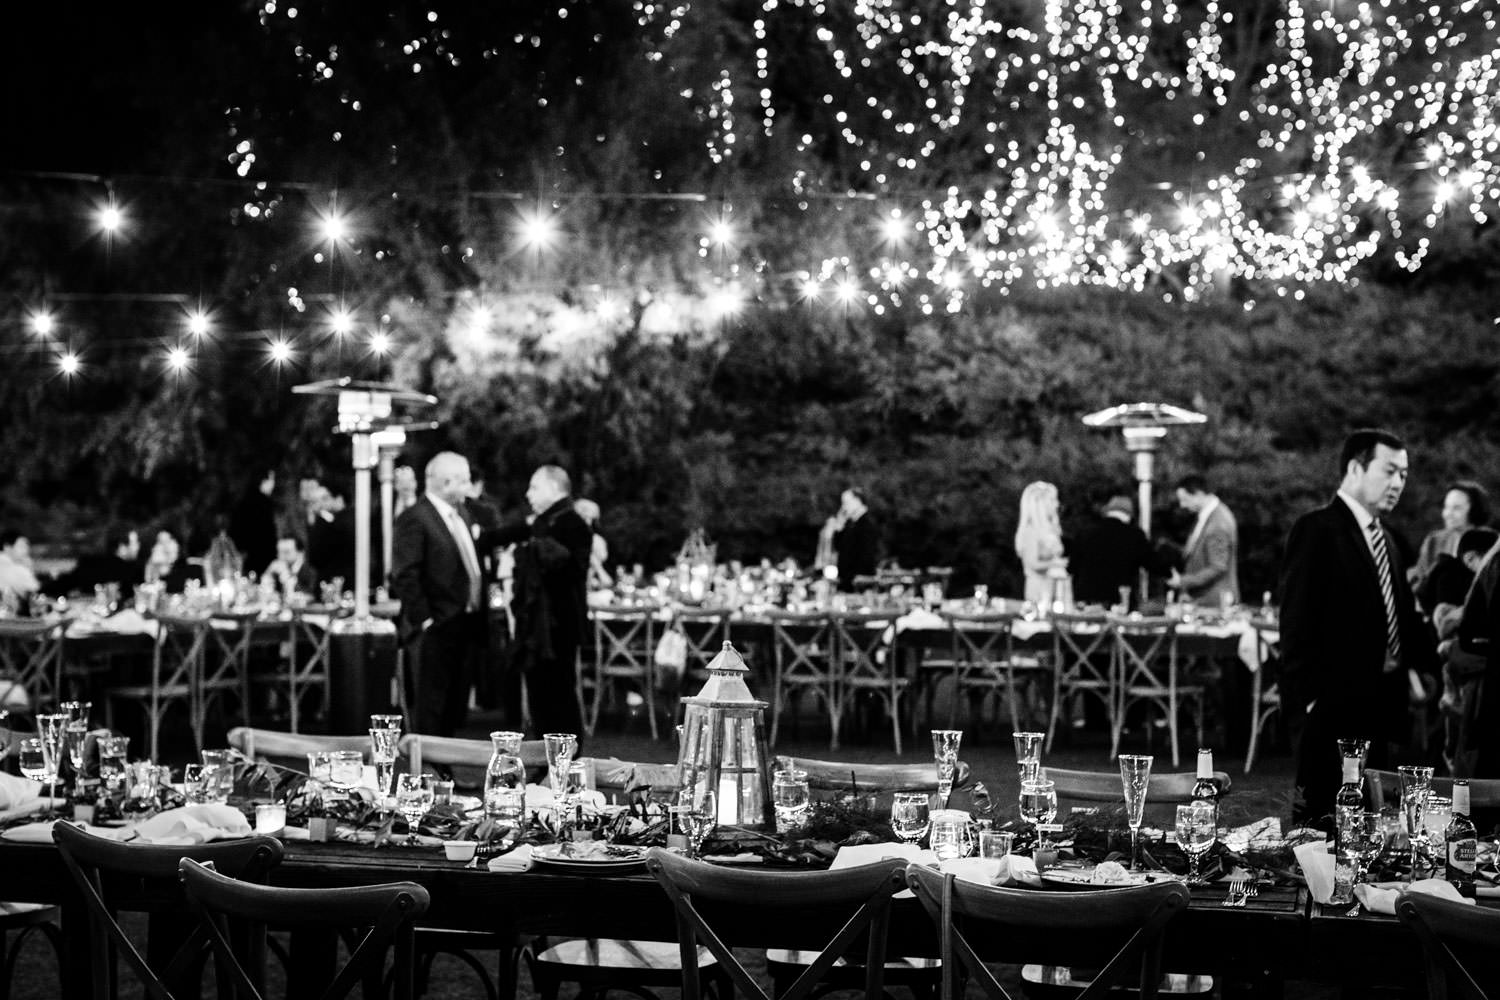 Black and white nighttime reception photo, Ethereal Open Air Resort Wedding with market lights and twinkle lights in the trees, Cavin Elizabeth Photography